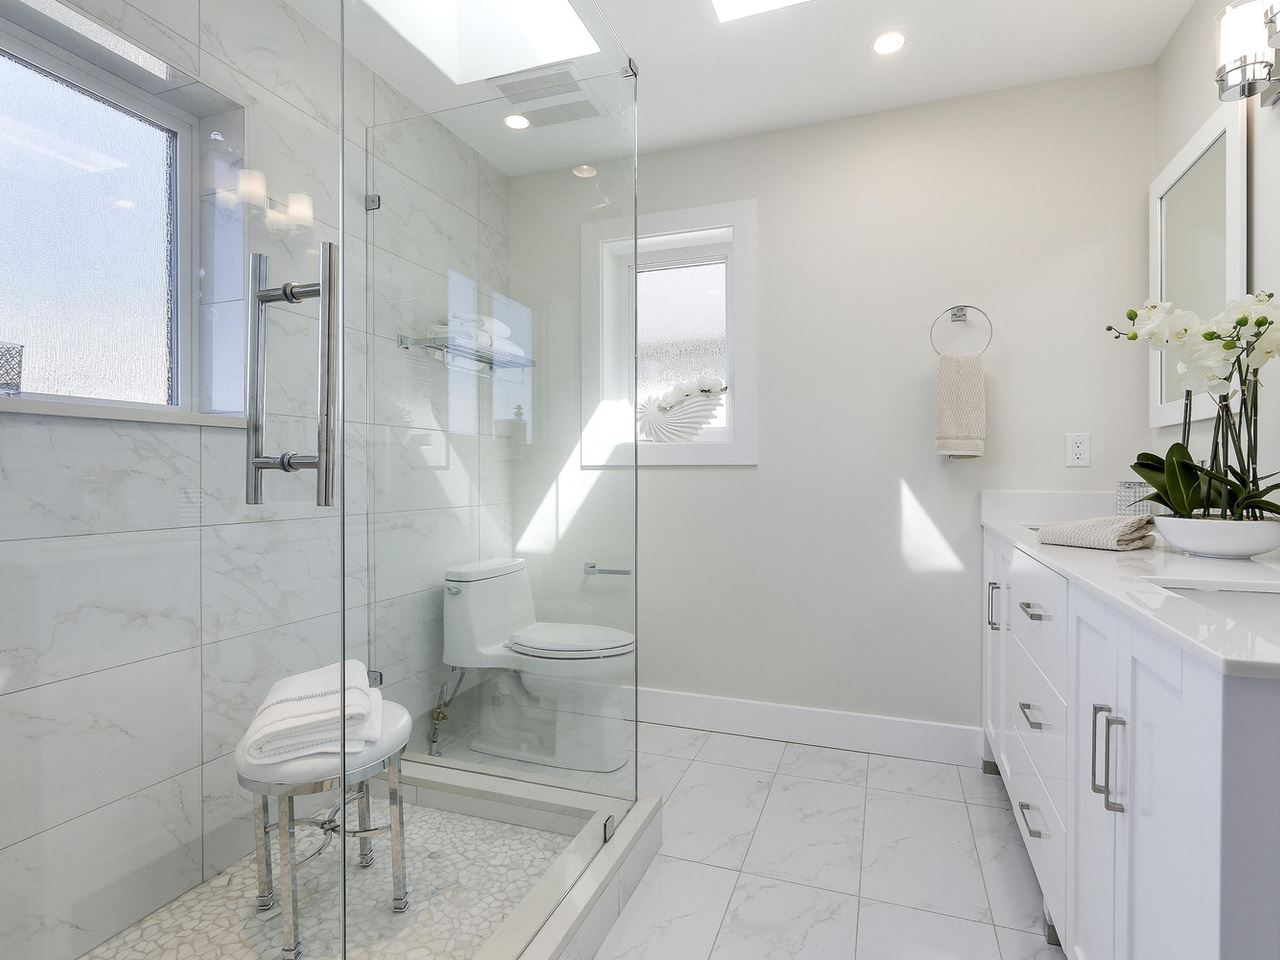 Photo 13: 3539 ETON Street in Vancouver: Hastings East House for sale (Vancouver East)  : MLS(r) # R2159493